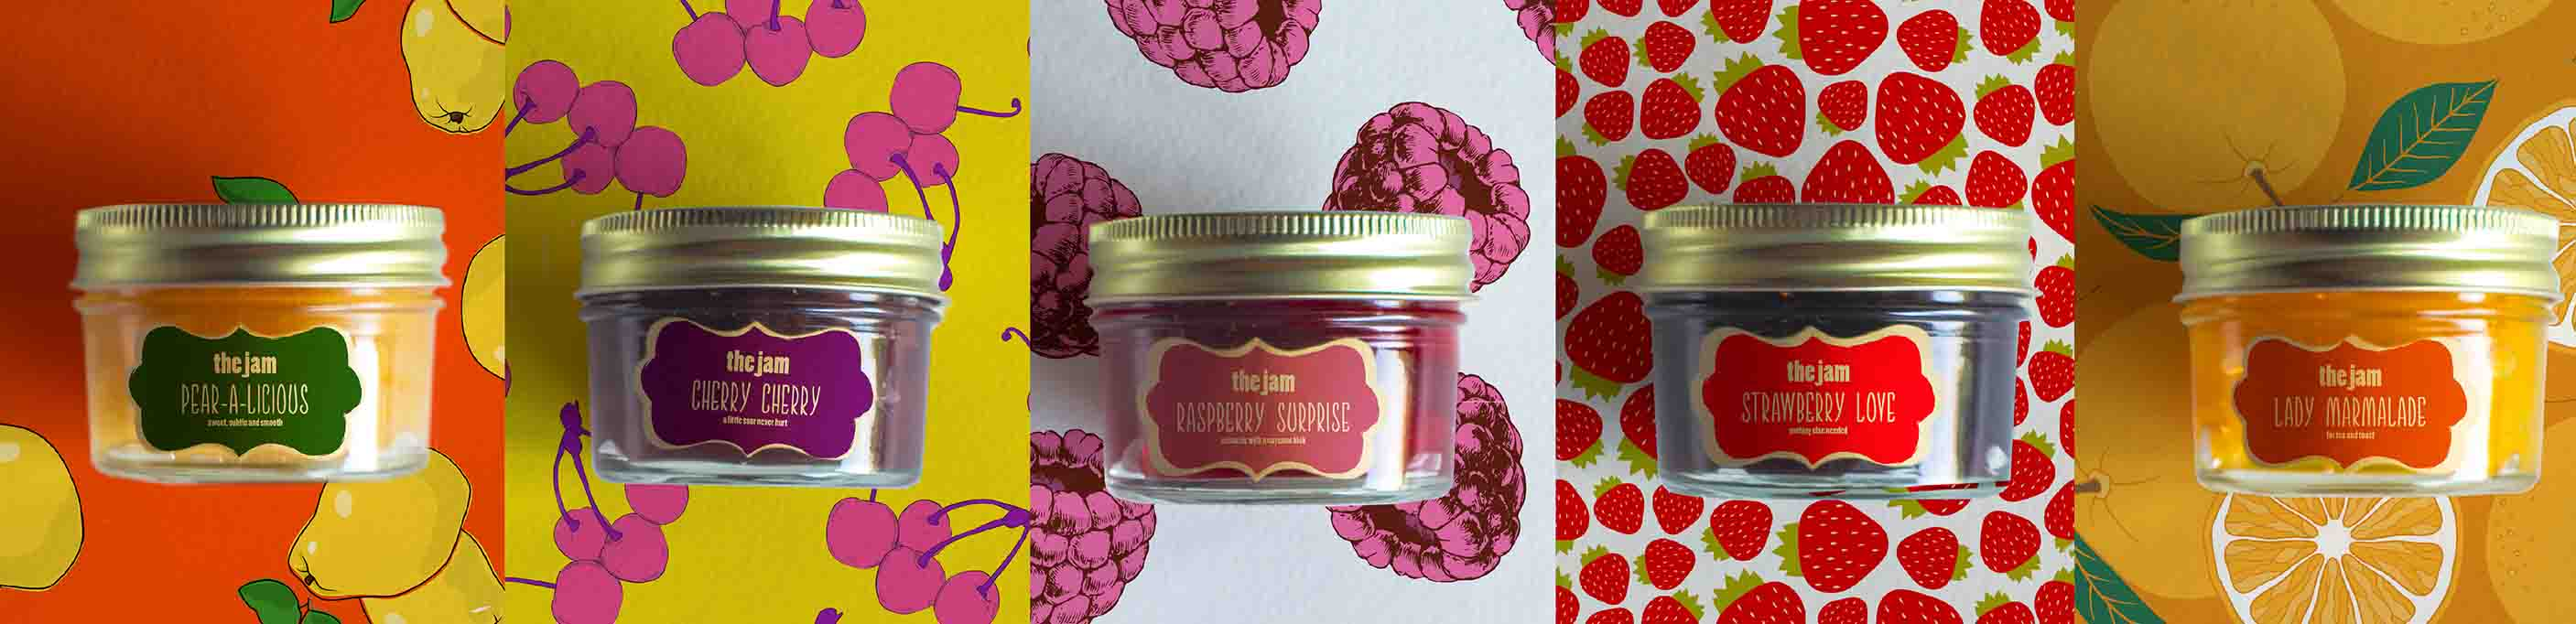 Jelly and Jam Jars